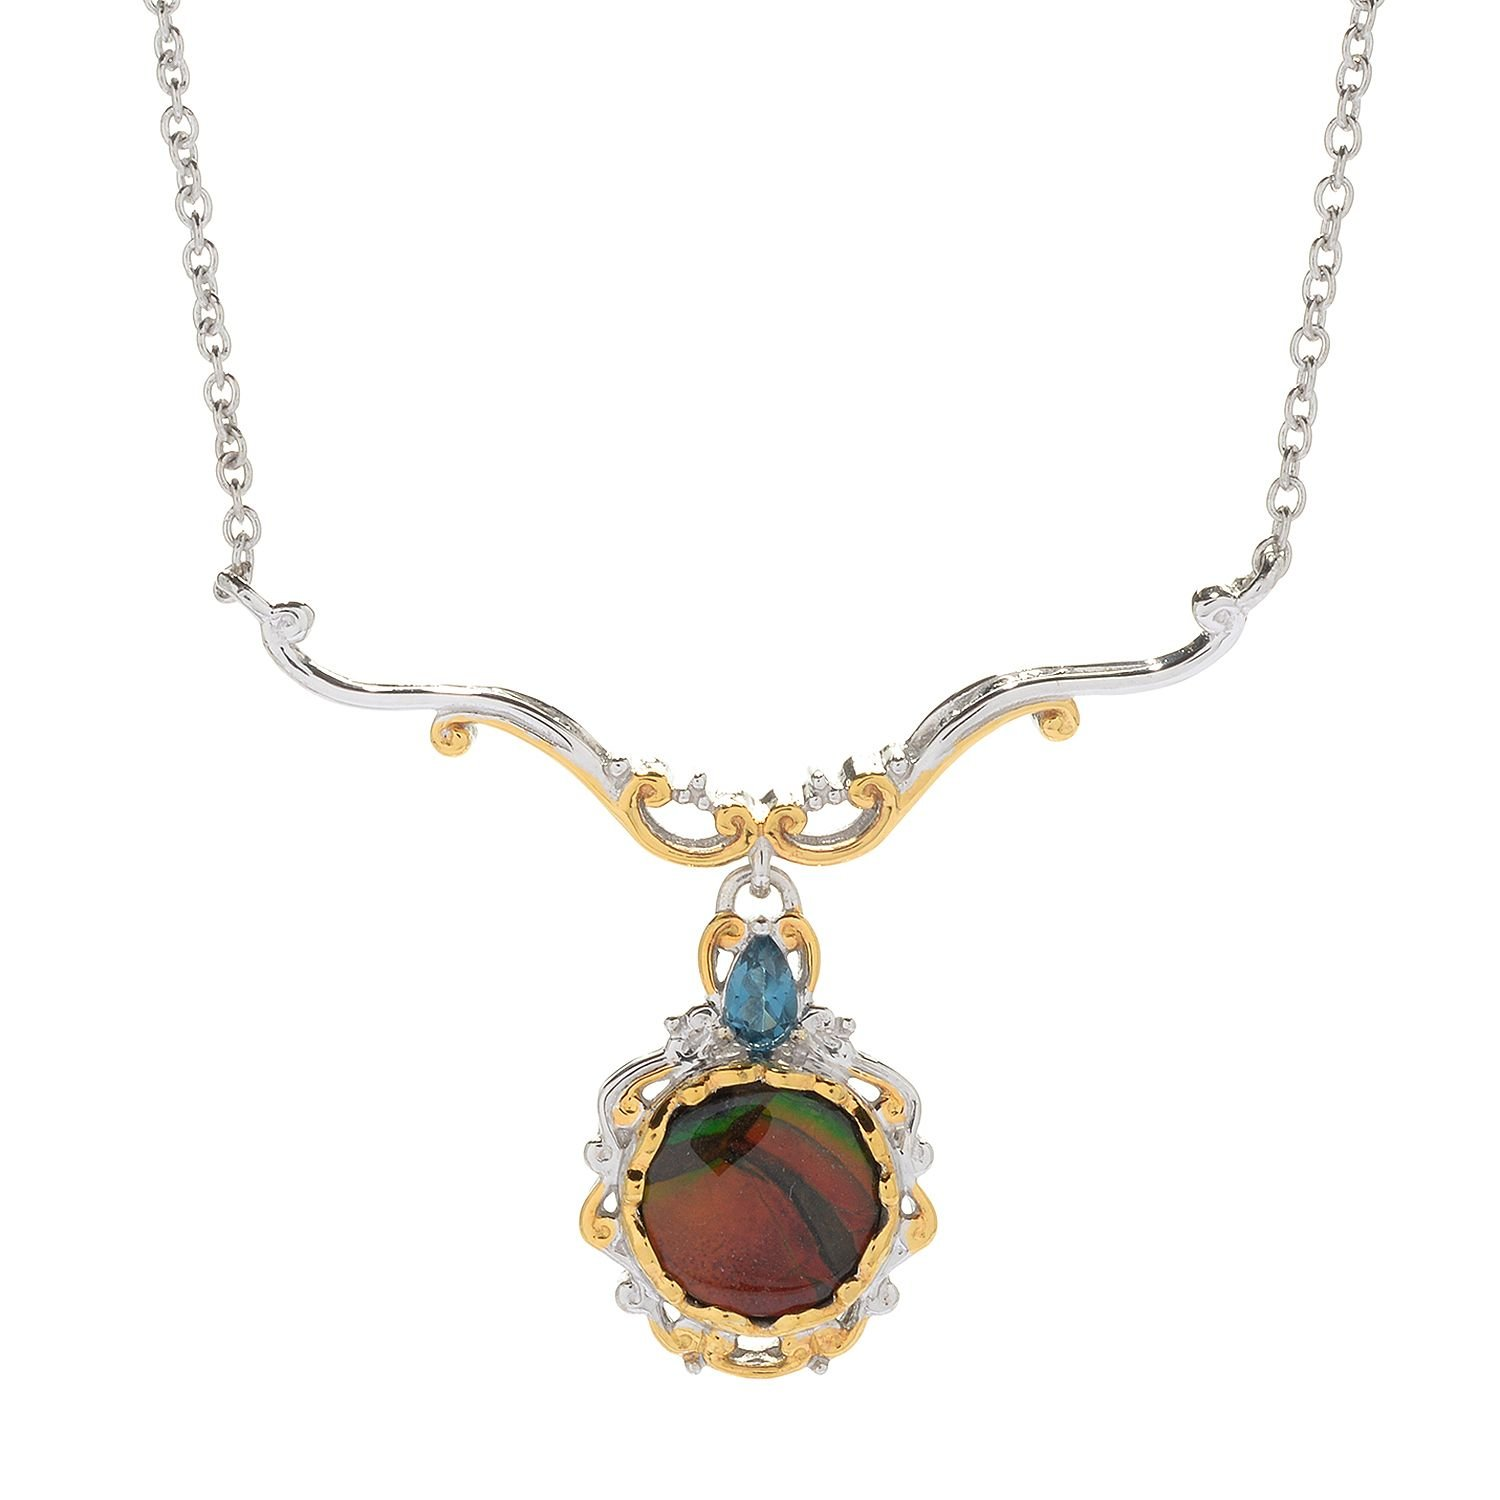 Michael Valitutti Palladium Silver Ammolite Triplet & London Blue Topaz Necklace